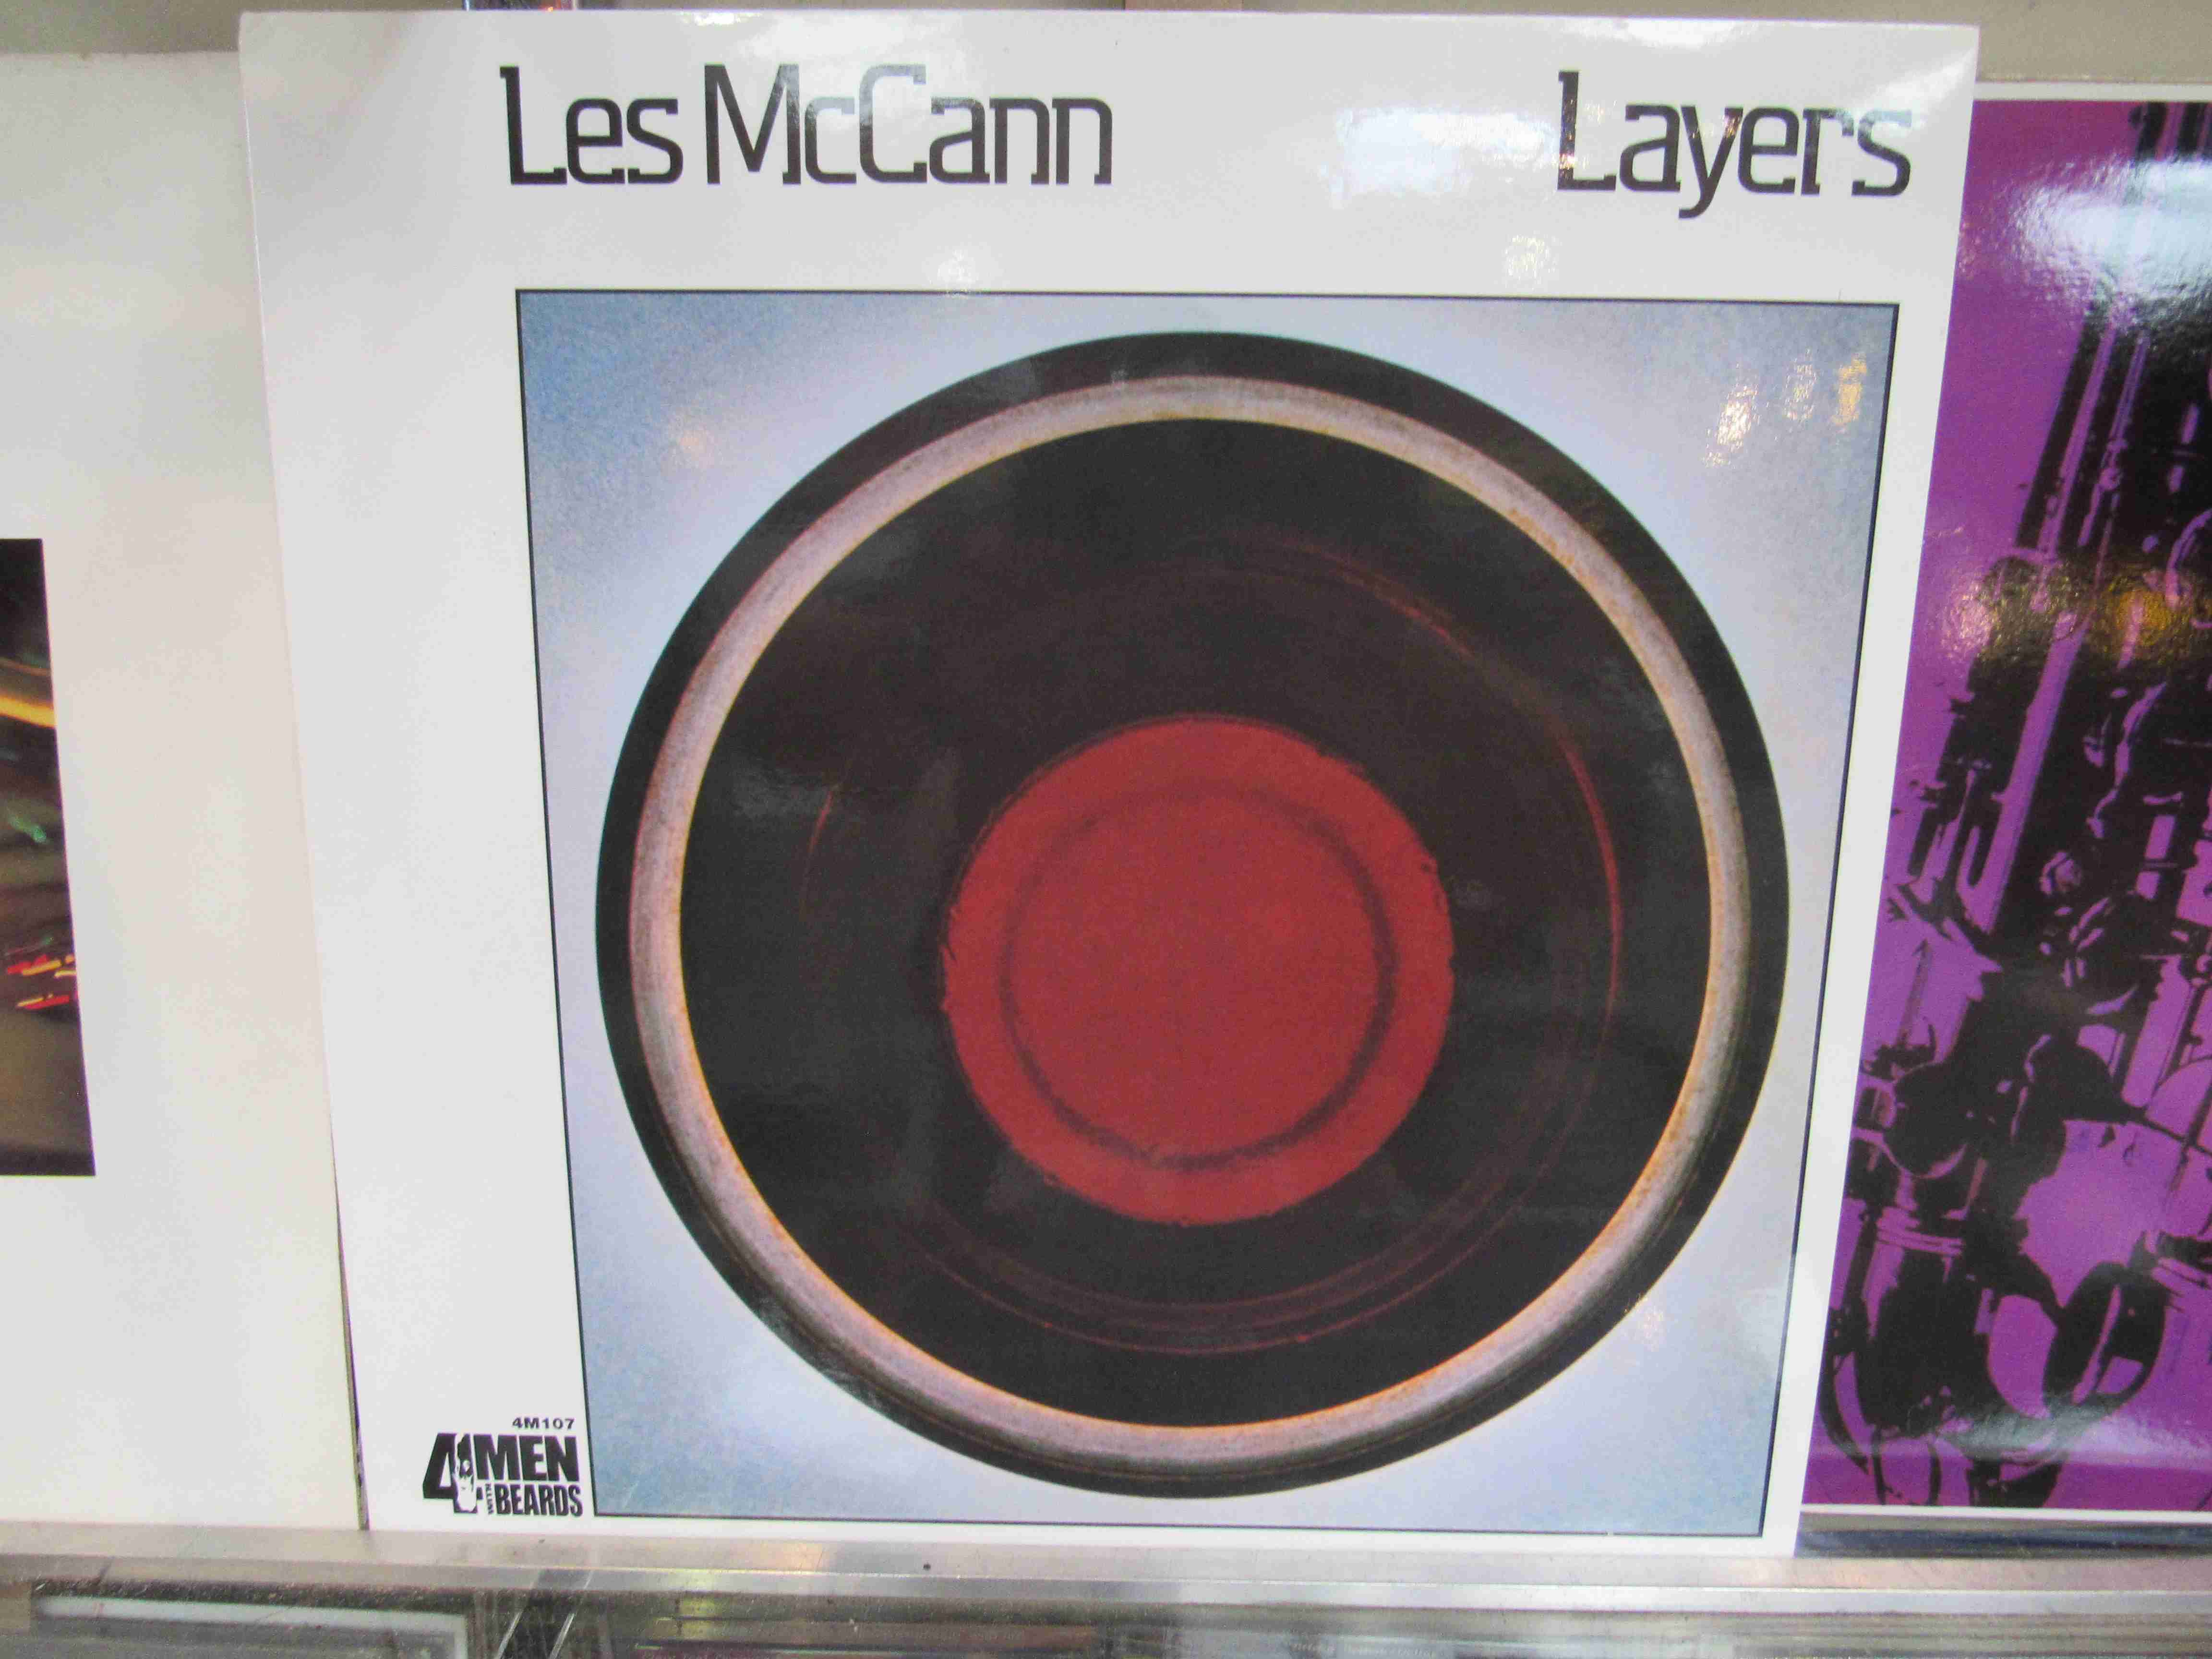 LES McCANN: Five LP's to include 'Much Les' SD1516, 'Layers' reissue 4M107,